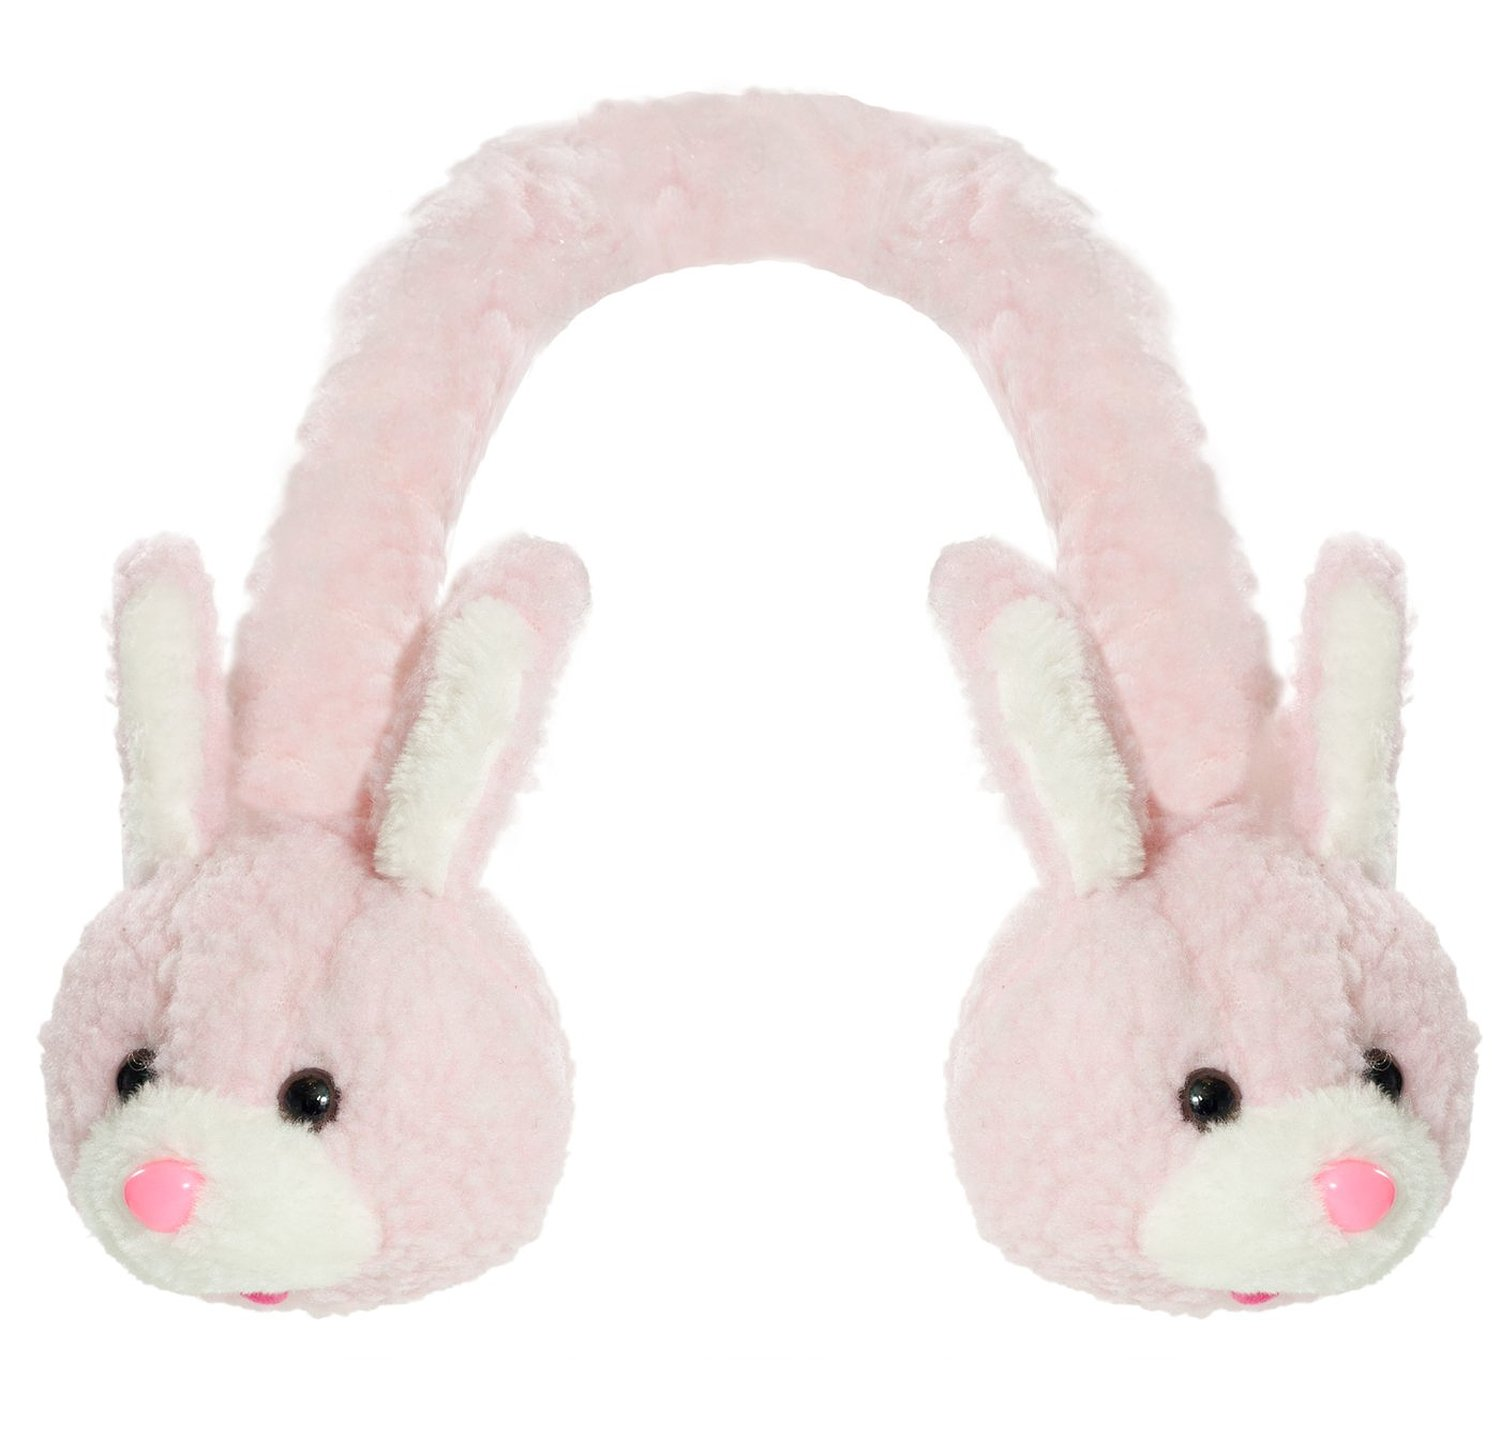 ear muffs for women